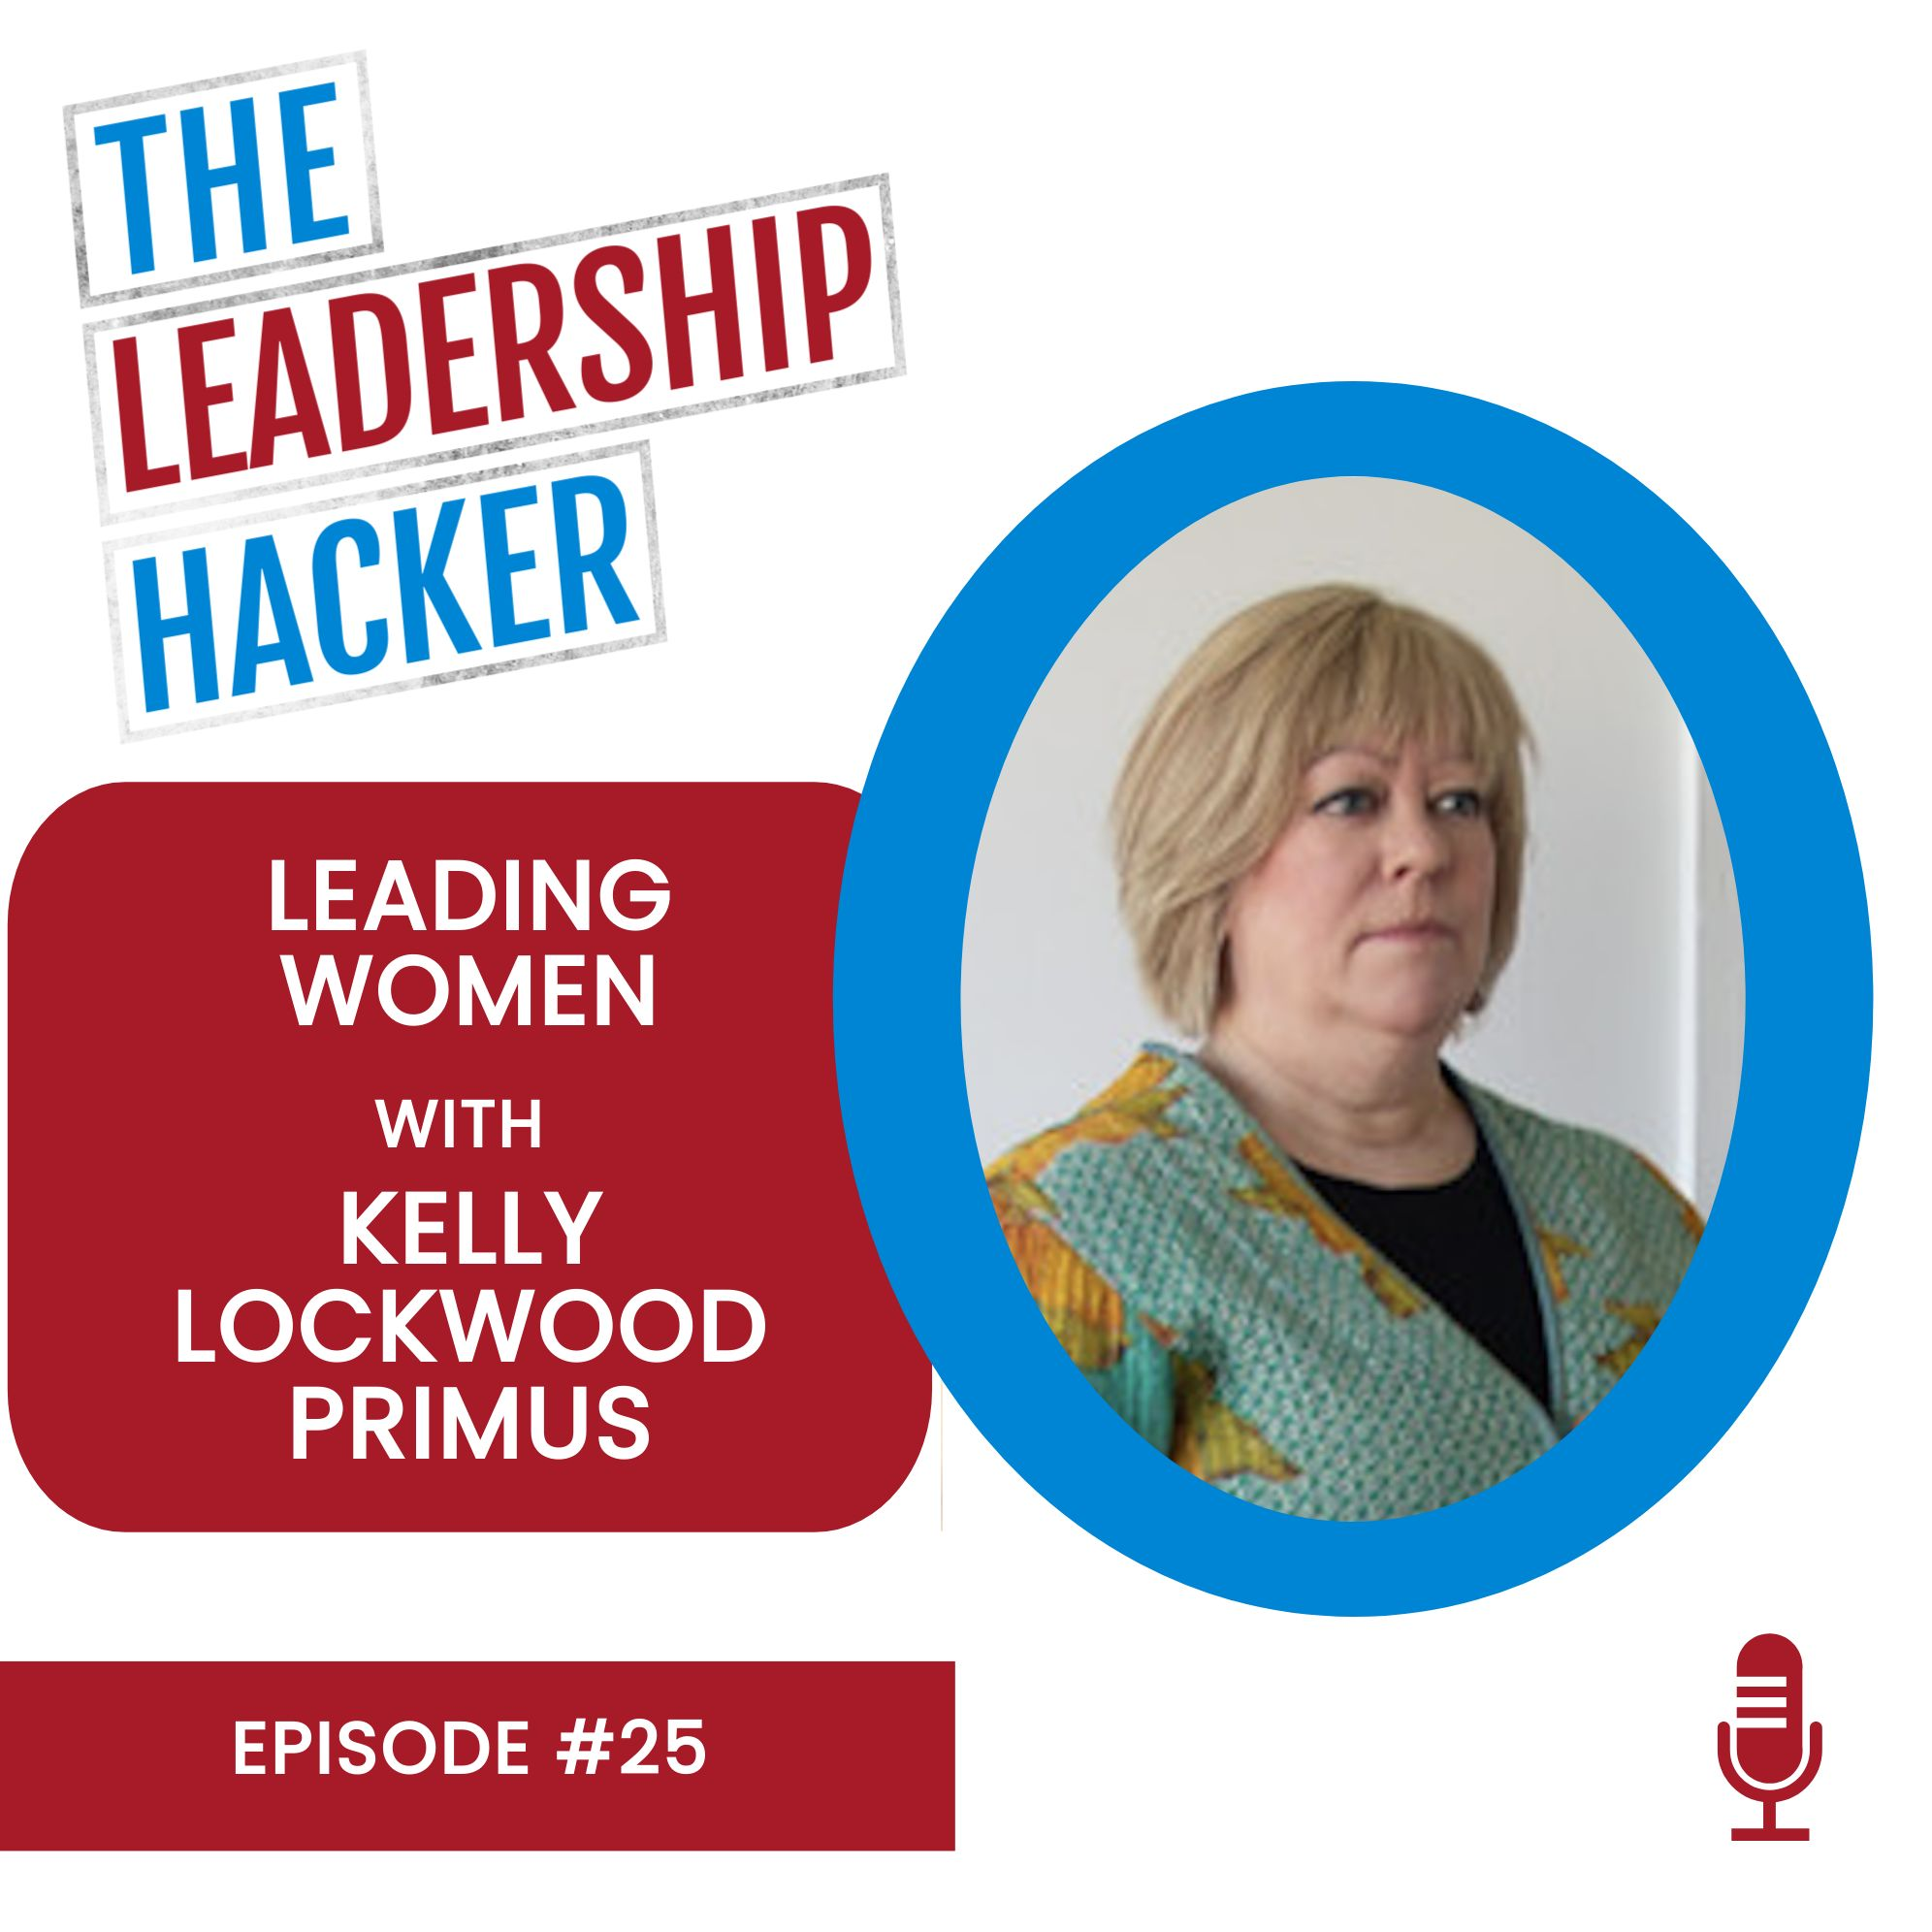 Leading Women with Kelly Lockwood Primus